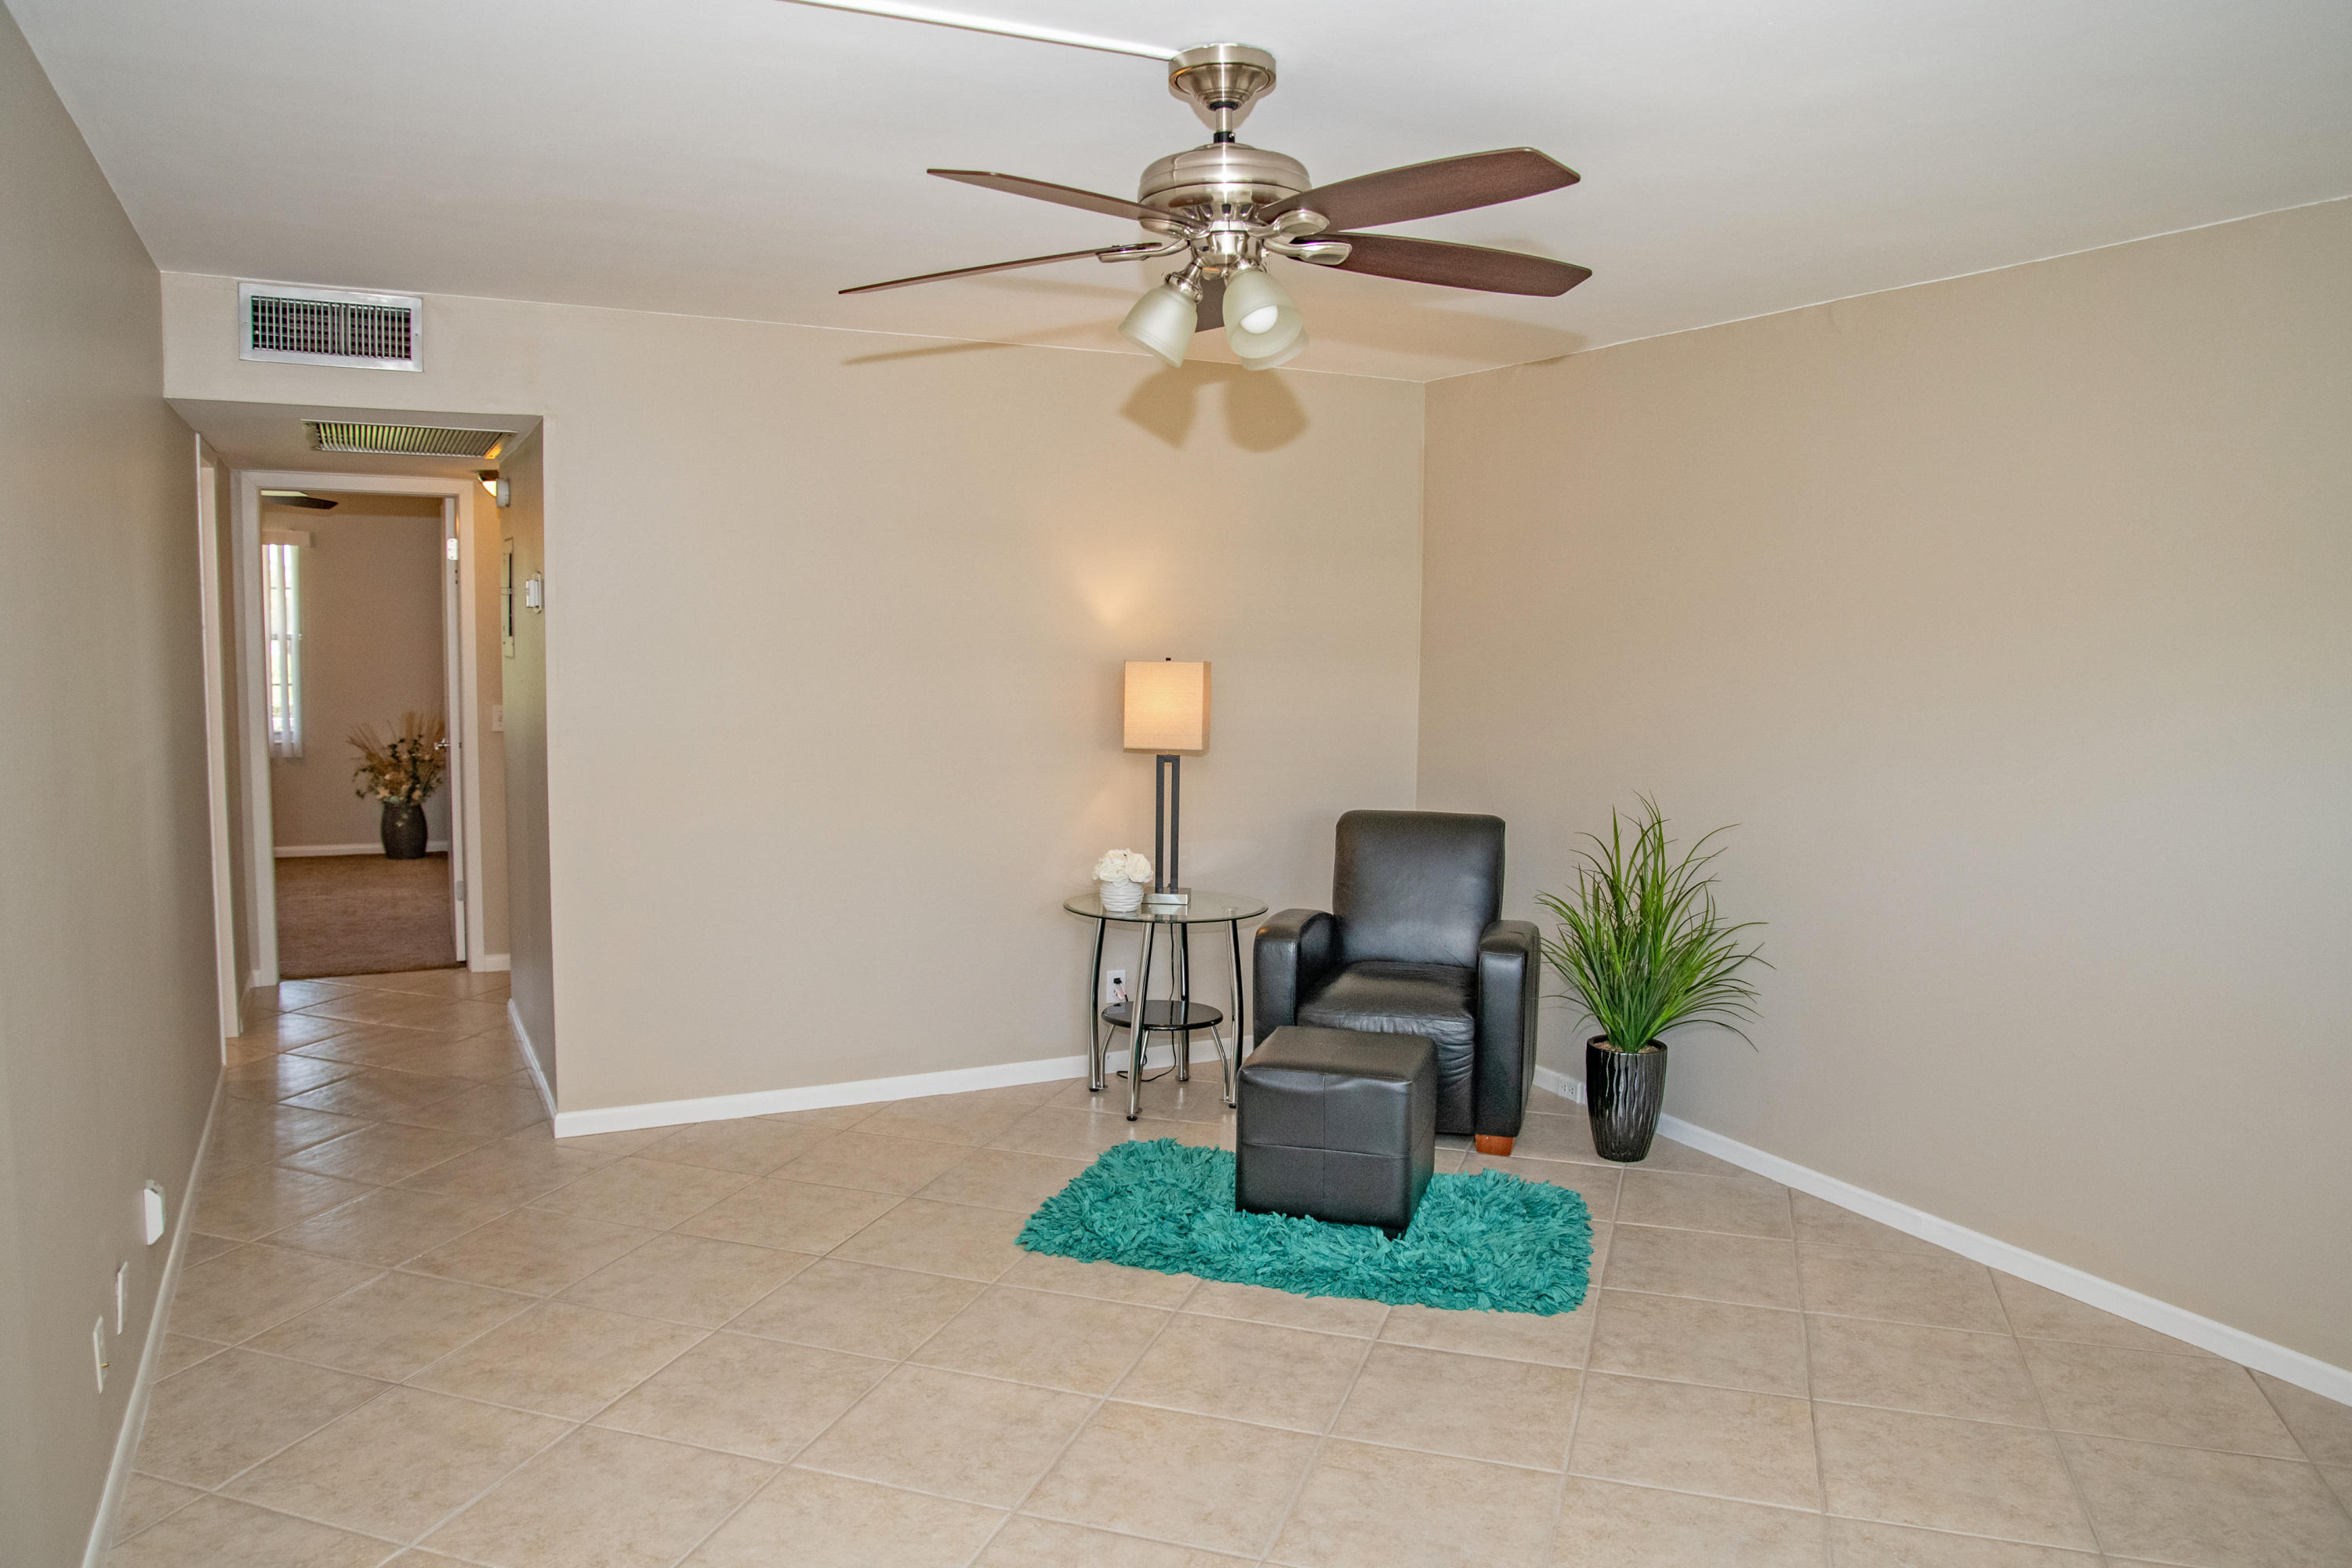 Home for sale in BRIGHTON AT CENTURY VILLAGE CONDO Boca Raton Florida